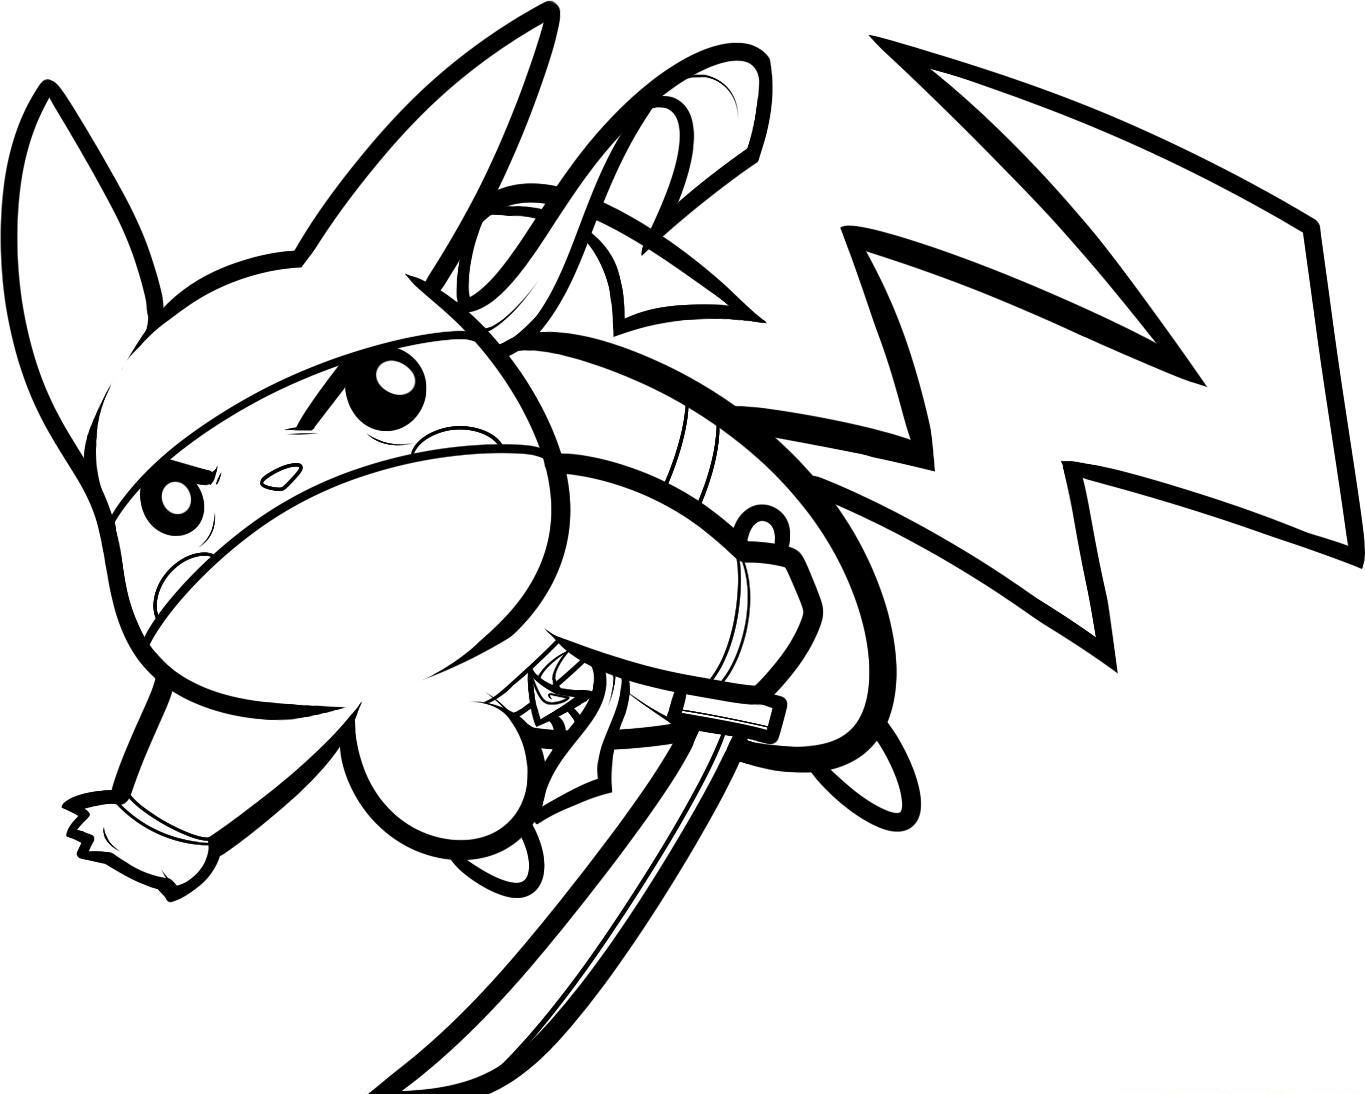 Ninja Pikachu Coloring Page Pokemon Pinterest Kids